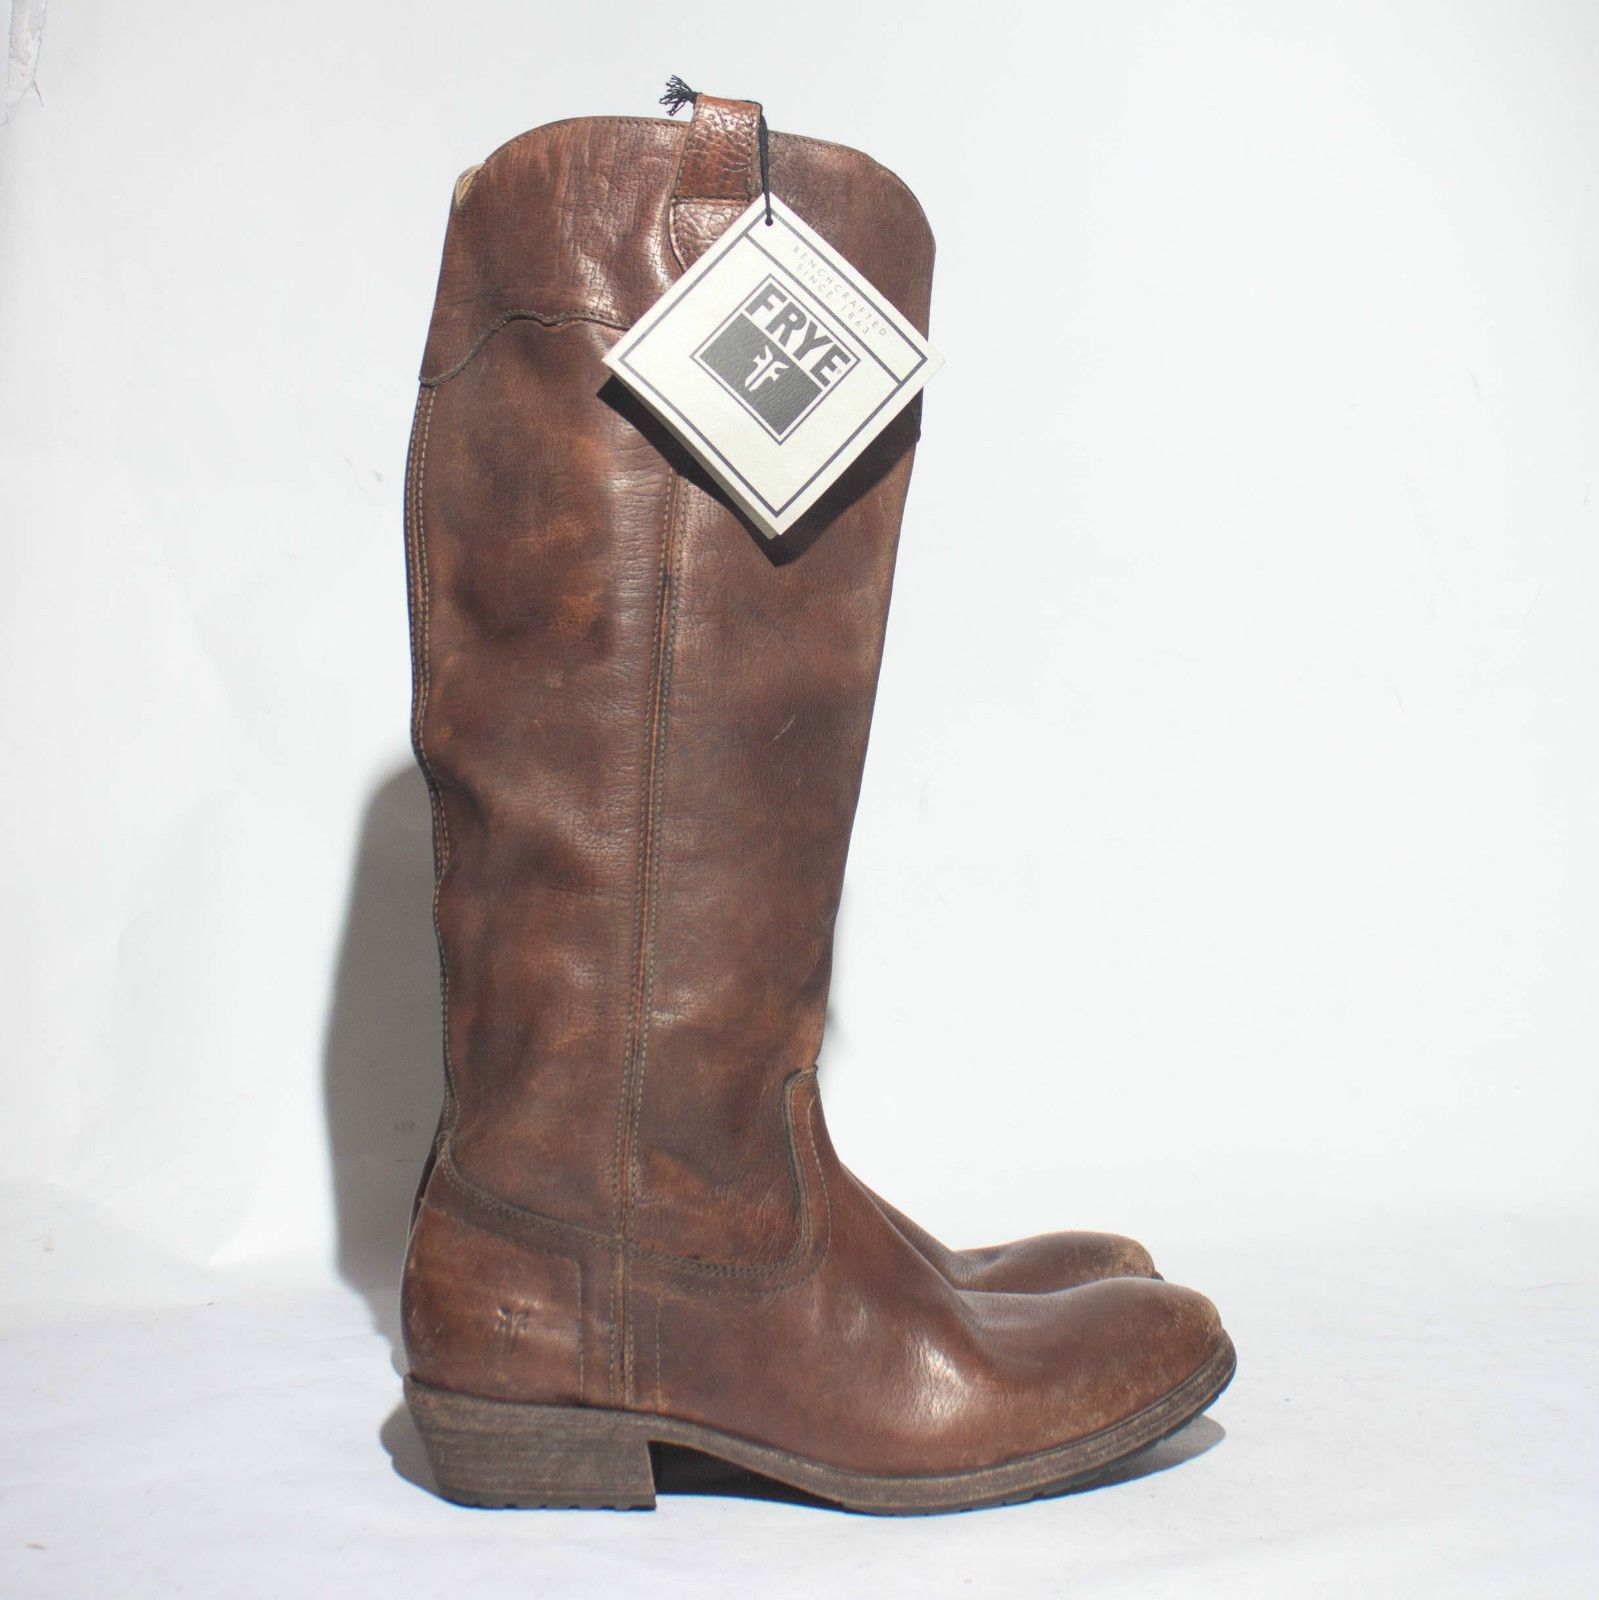 Riding Boots, Cowboy Boot, Brown Leather, Denim Boots, Horse Riding Boots, Equestrian  Boots, Cowboy Boots, Frye Riding Boots, Brown Skin